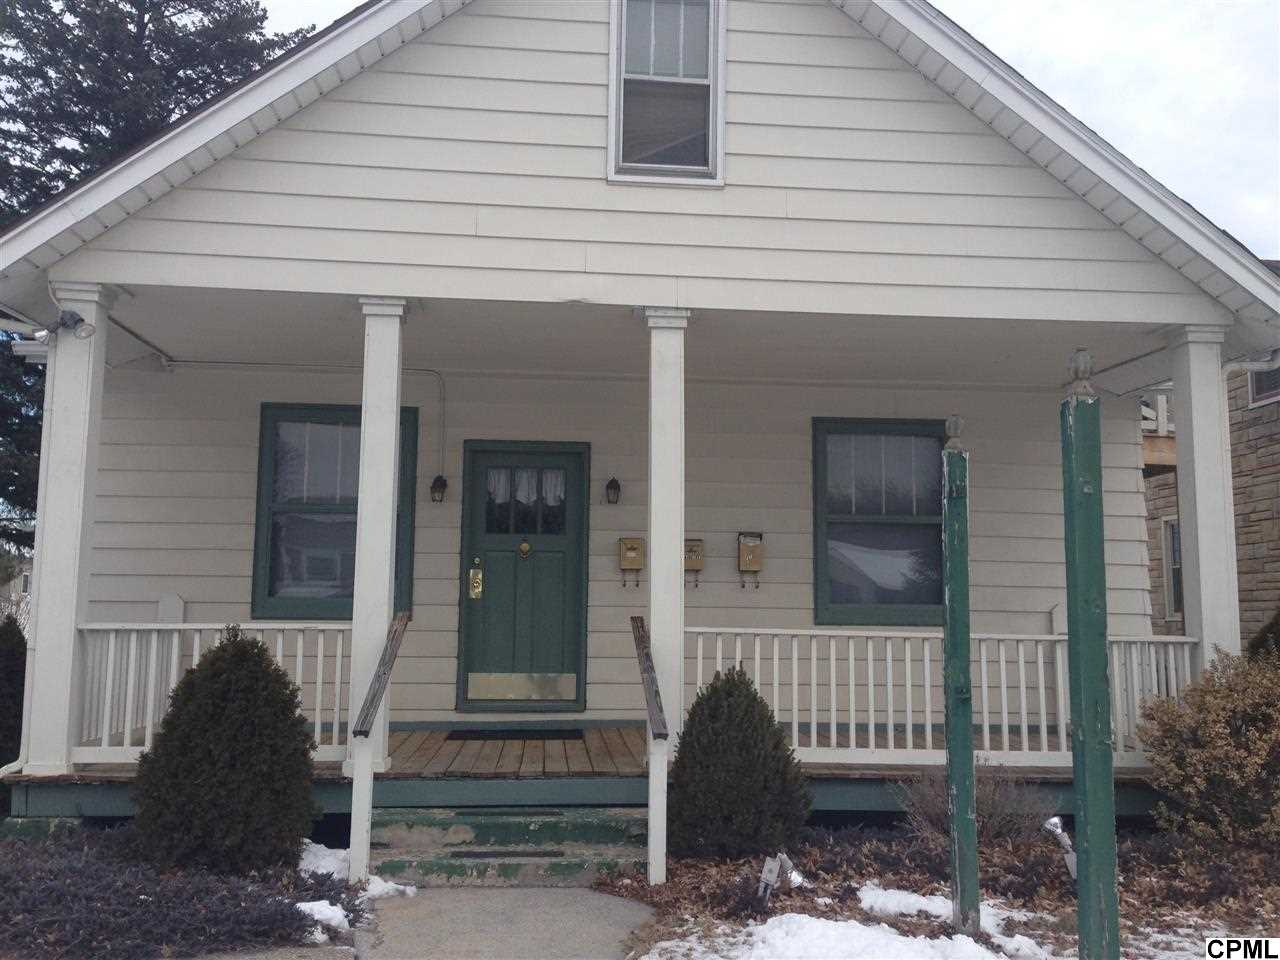 Rental Homes for Rent, ListingId:31843464, location: 4820 Derry Street Rear 1st Flr. Harrisburg 17111